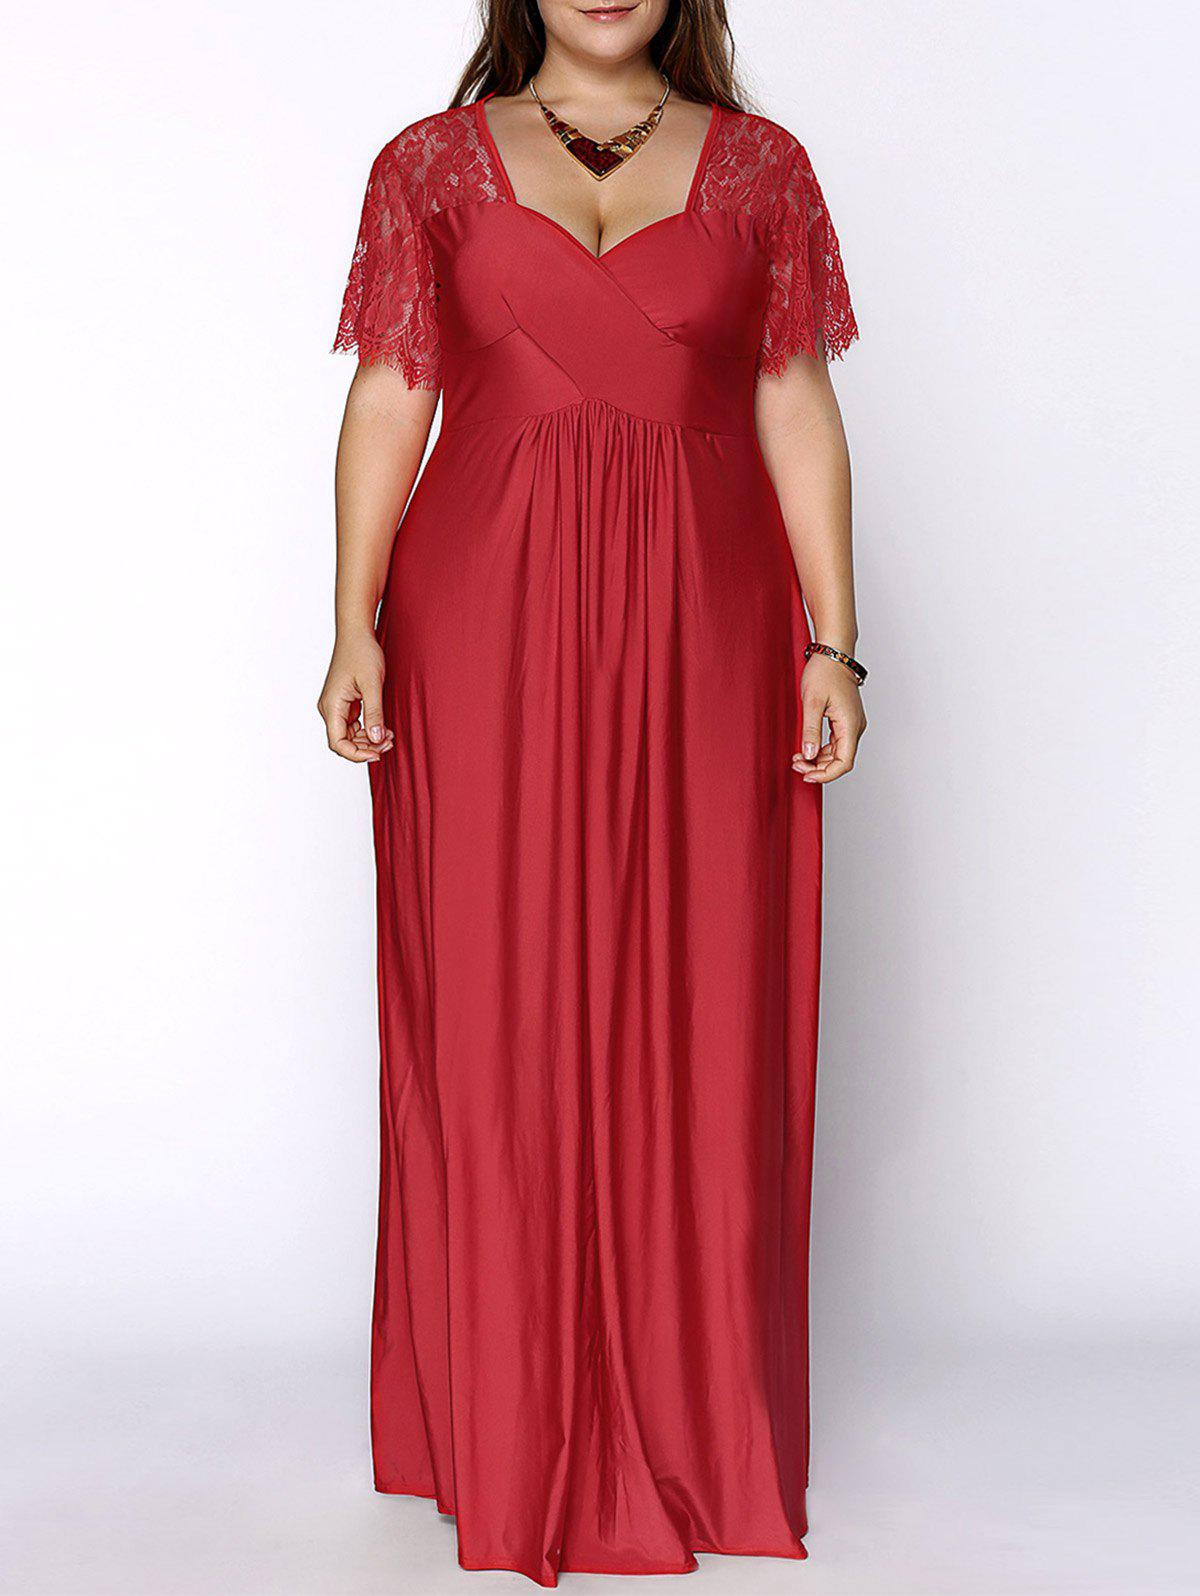 Stylish Women's Plus Size Sweetheart Neckline Lace Panelled Dress - RED XL